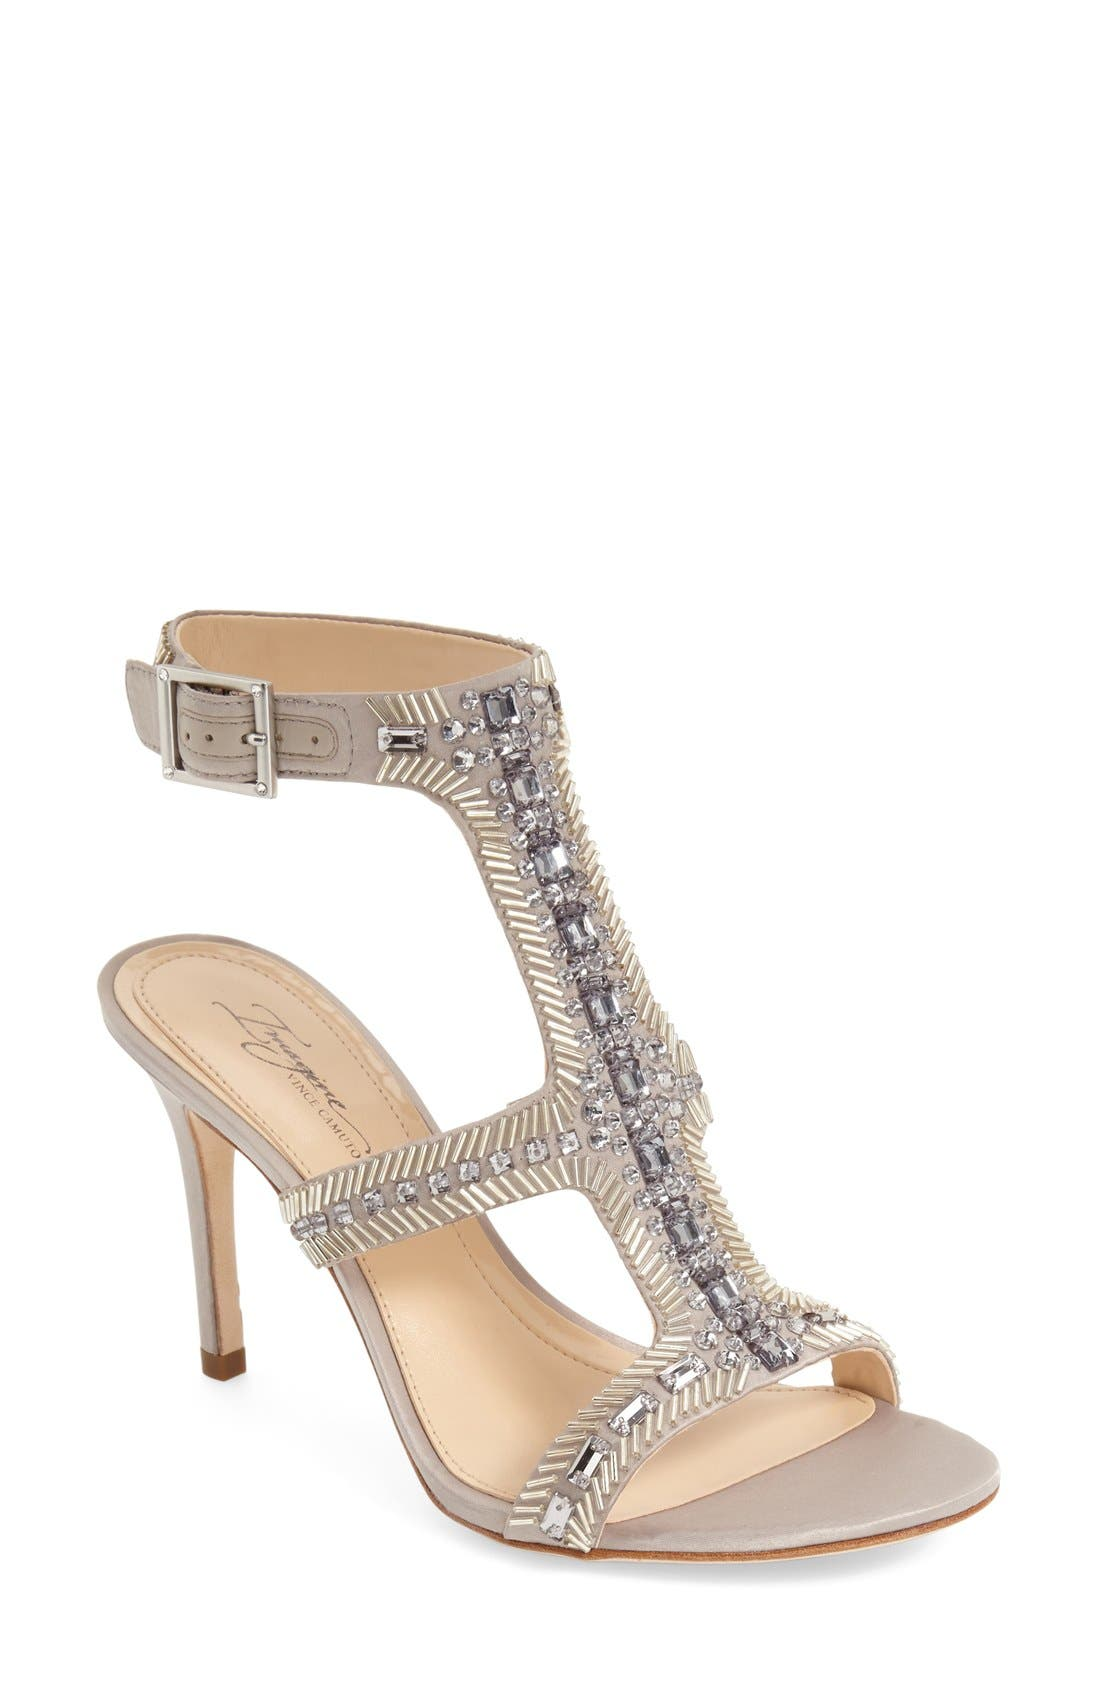 Imagine Vince Camuto 'Price' Beaded T-Strap Sandal,                         Main,                         color, 060